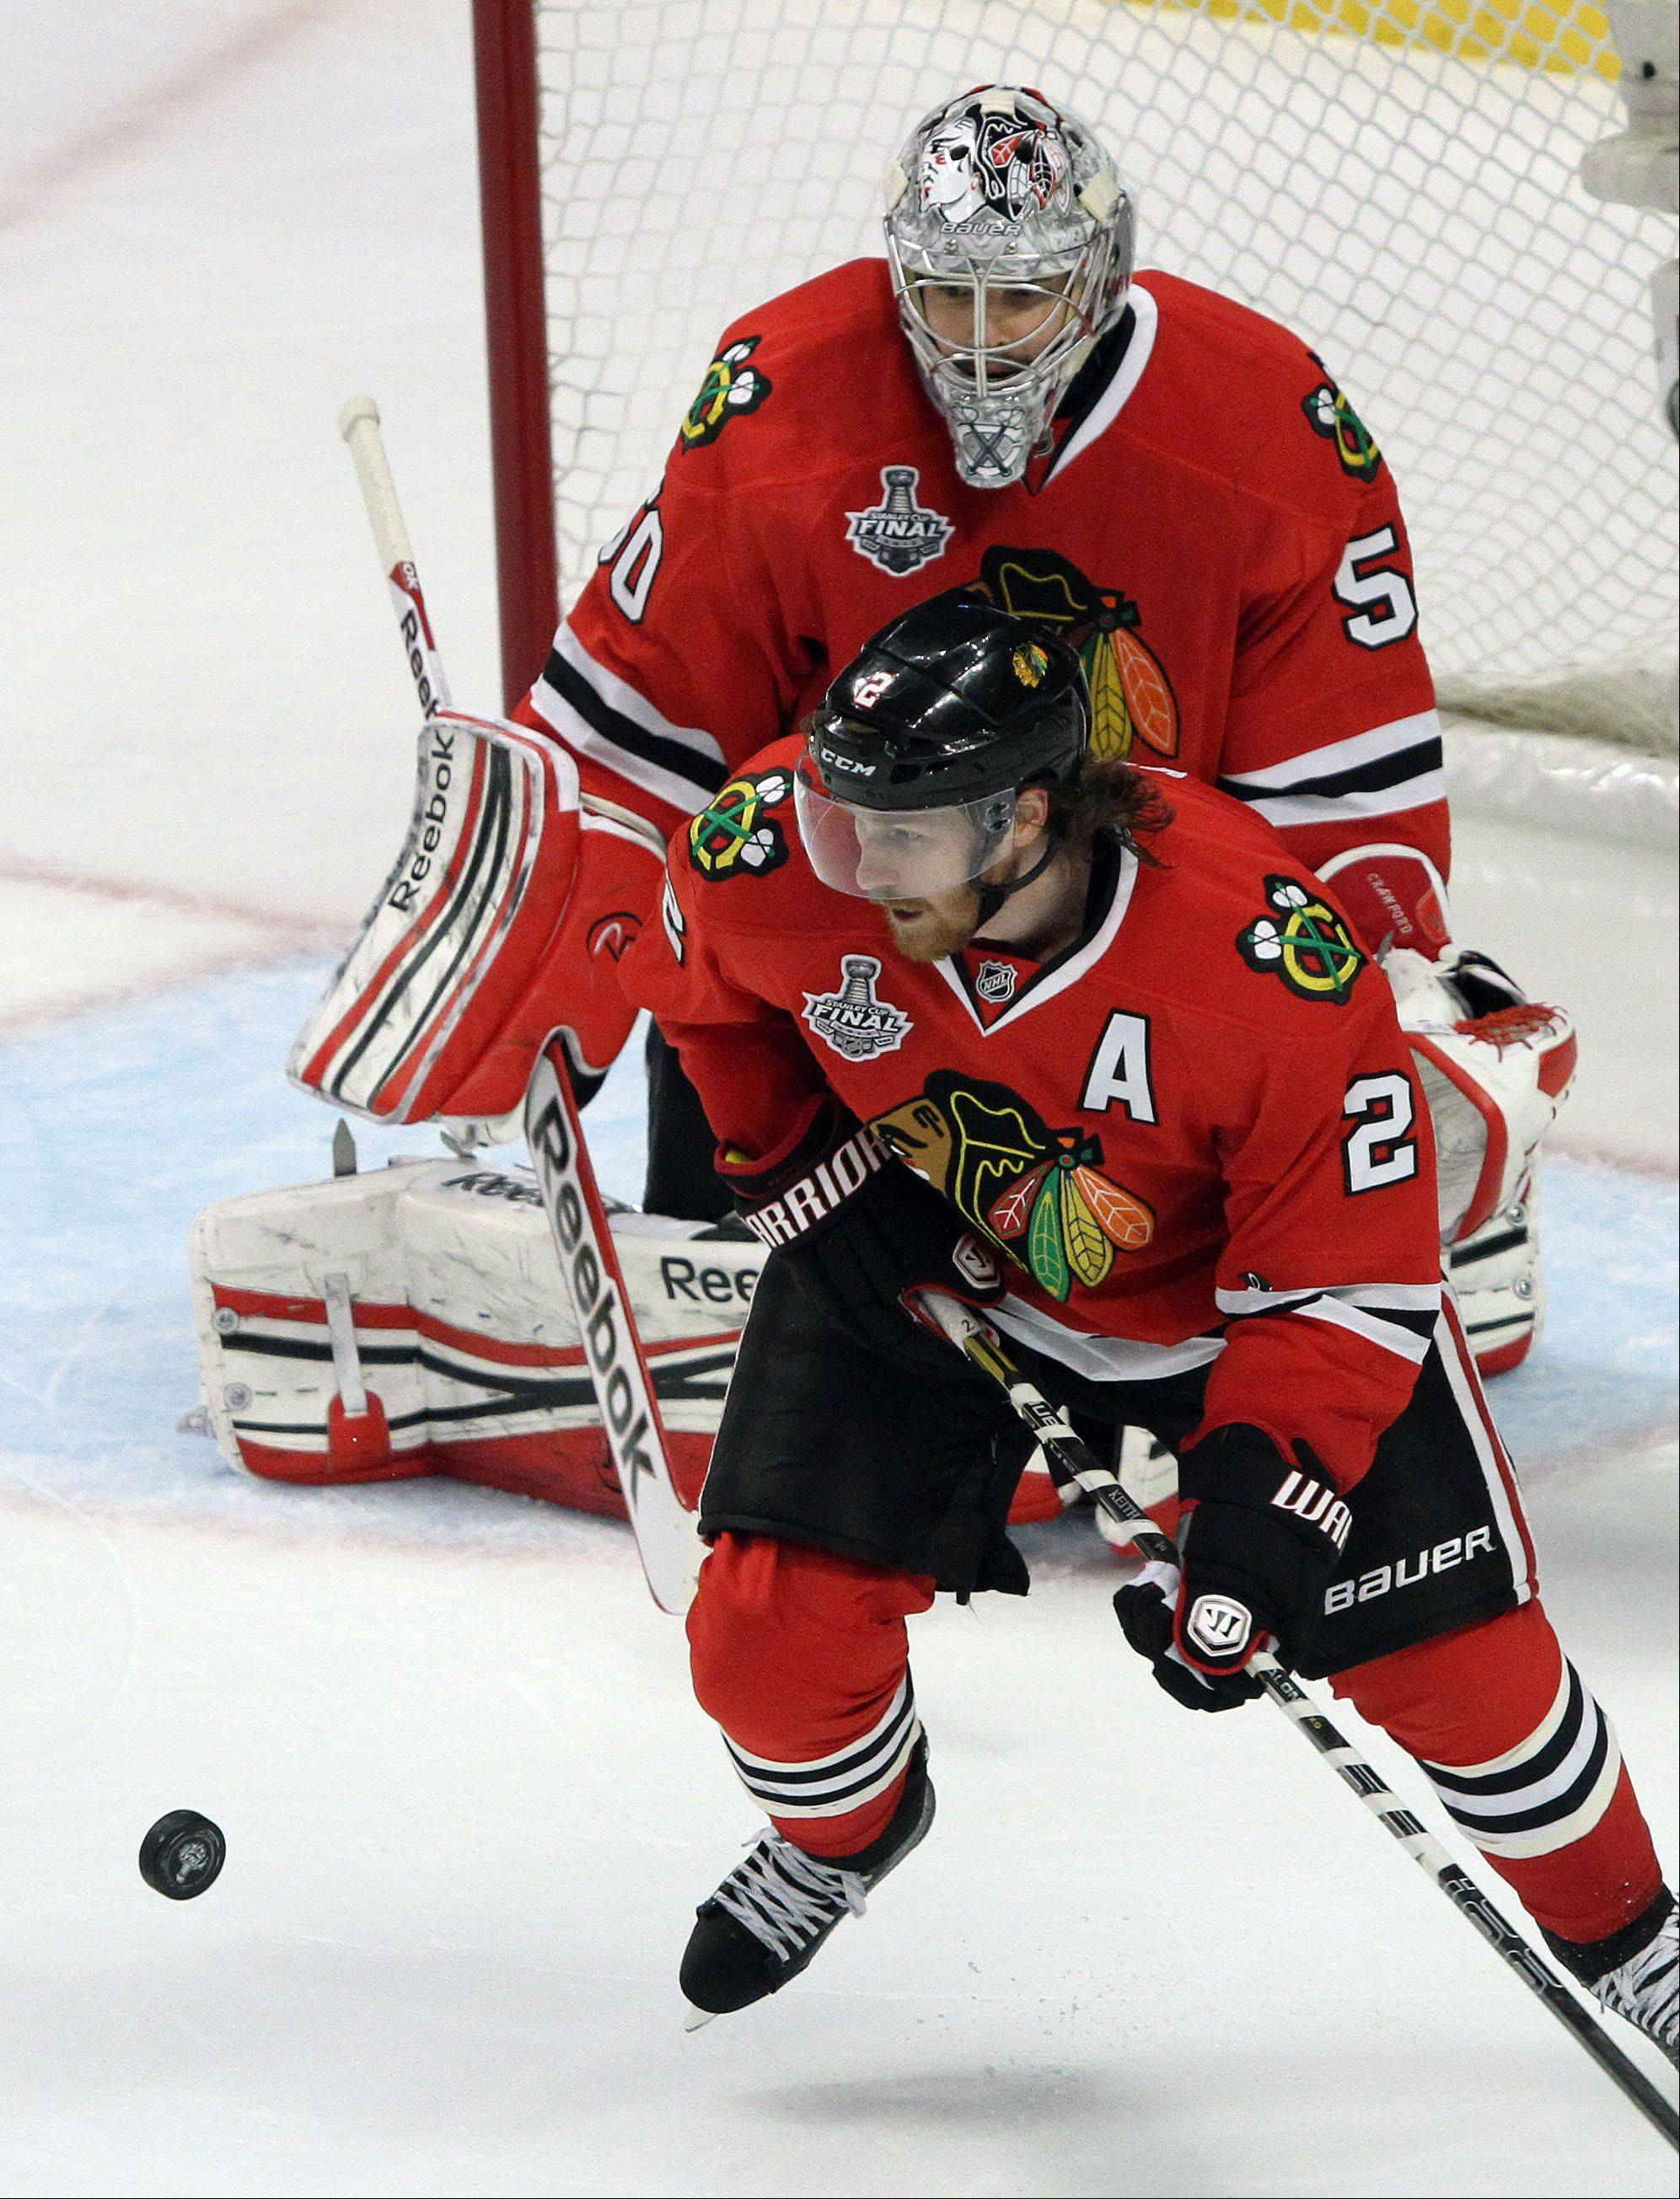 Chicago Blackhawks defenseman Duncan Keith breaks up a play in front of the net during game 2 of the Stanley Cup Finals against the Boston Bruins at the United Center in Chicago Saturday.